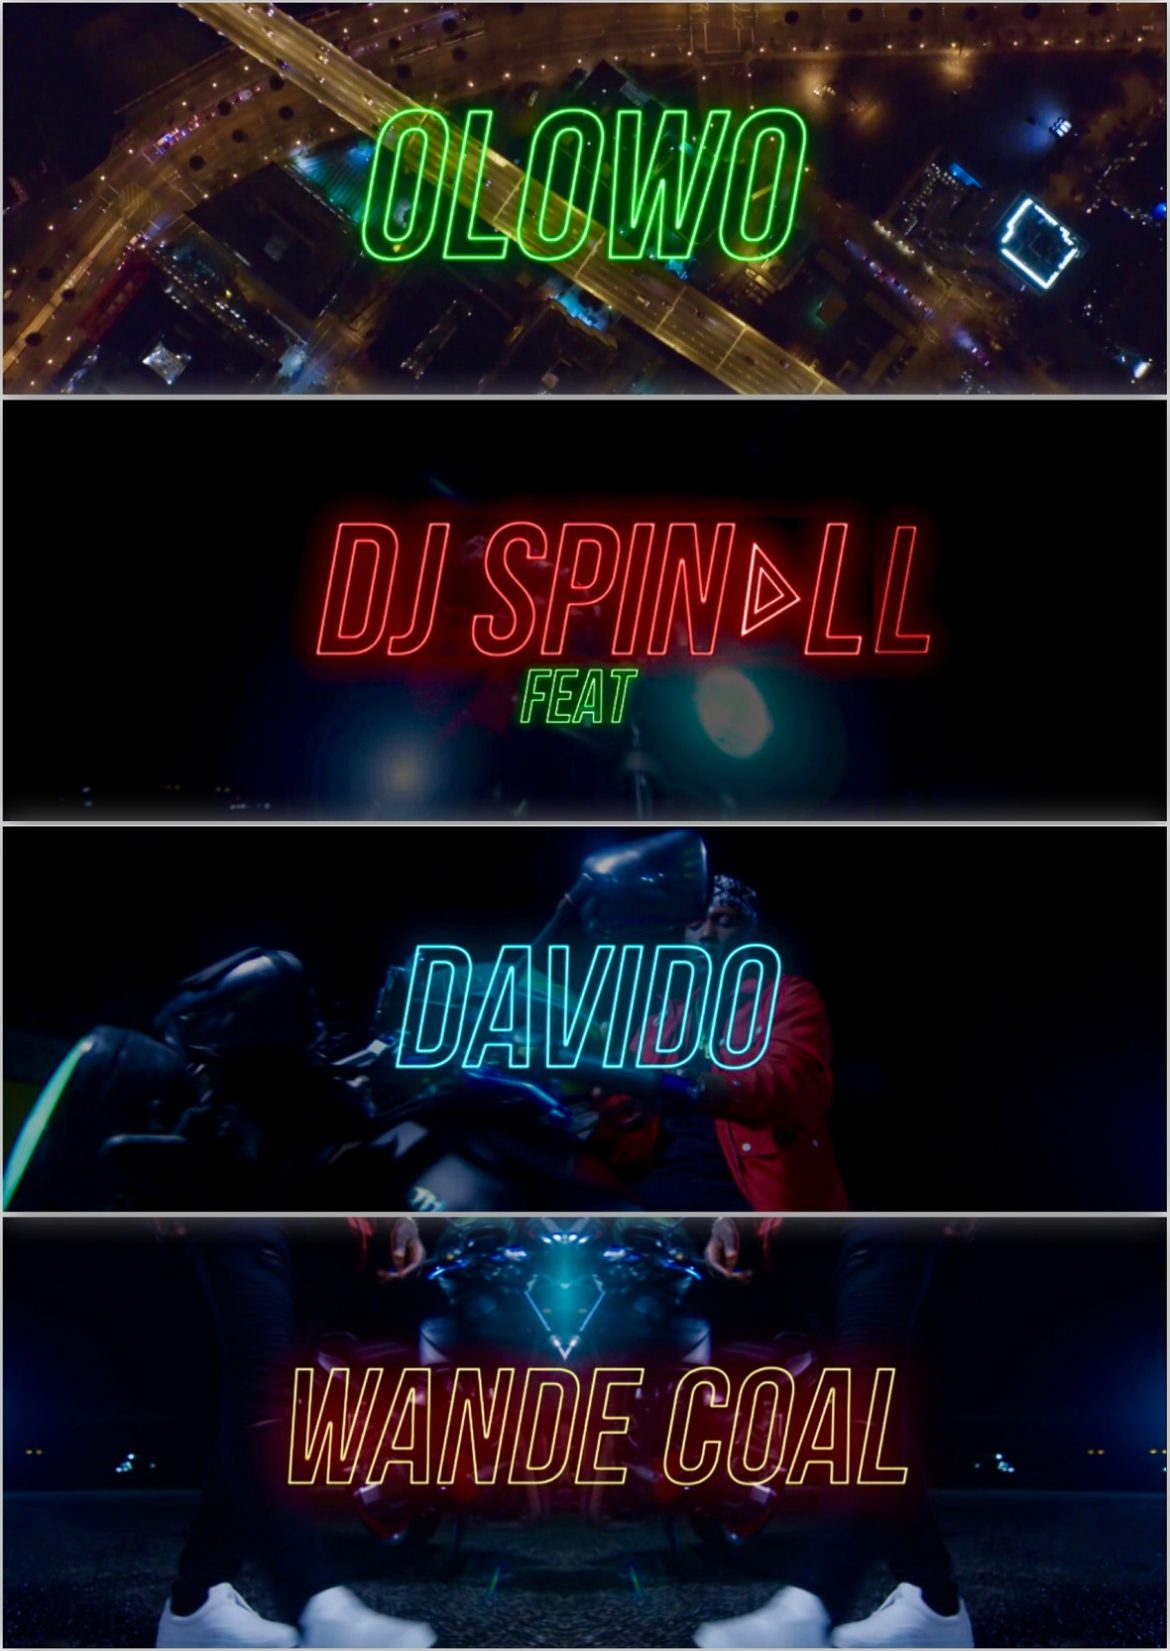 DJ Spinall - Olowo ft. Davido, Wande Coal